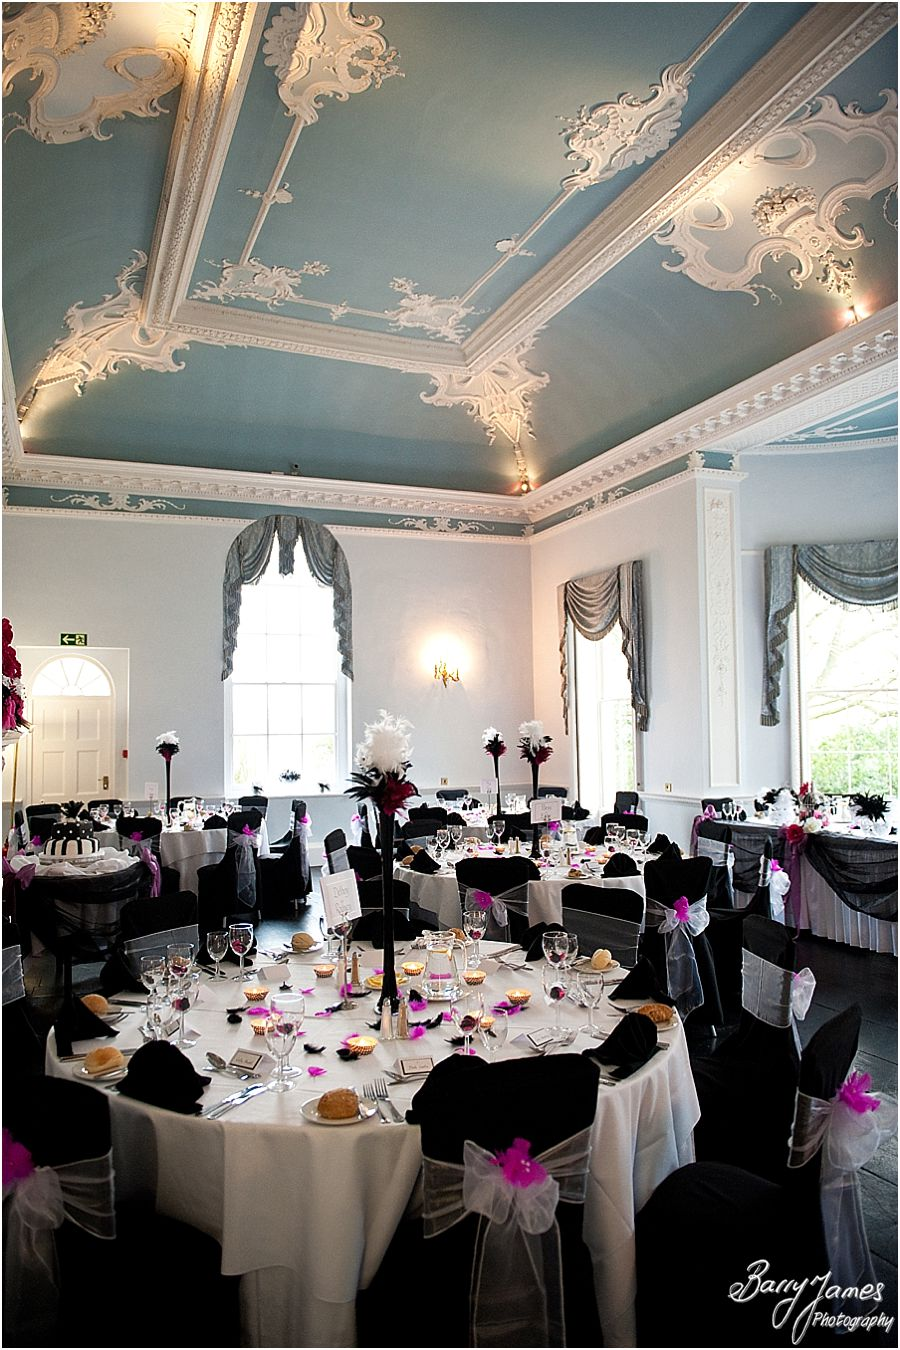 Wedding breakfast at Somerford Hall in Brewood by Wolverhampton Wedding Photographer Barry James